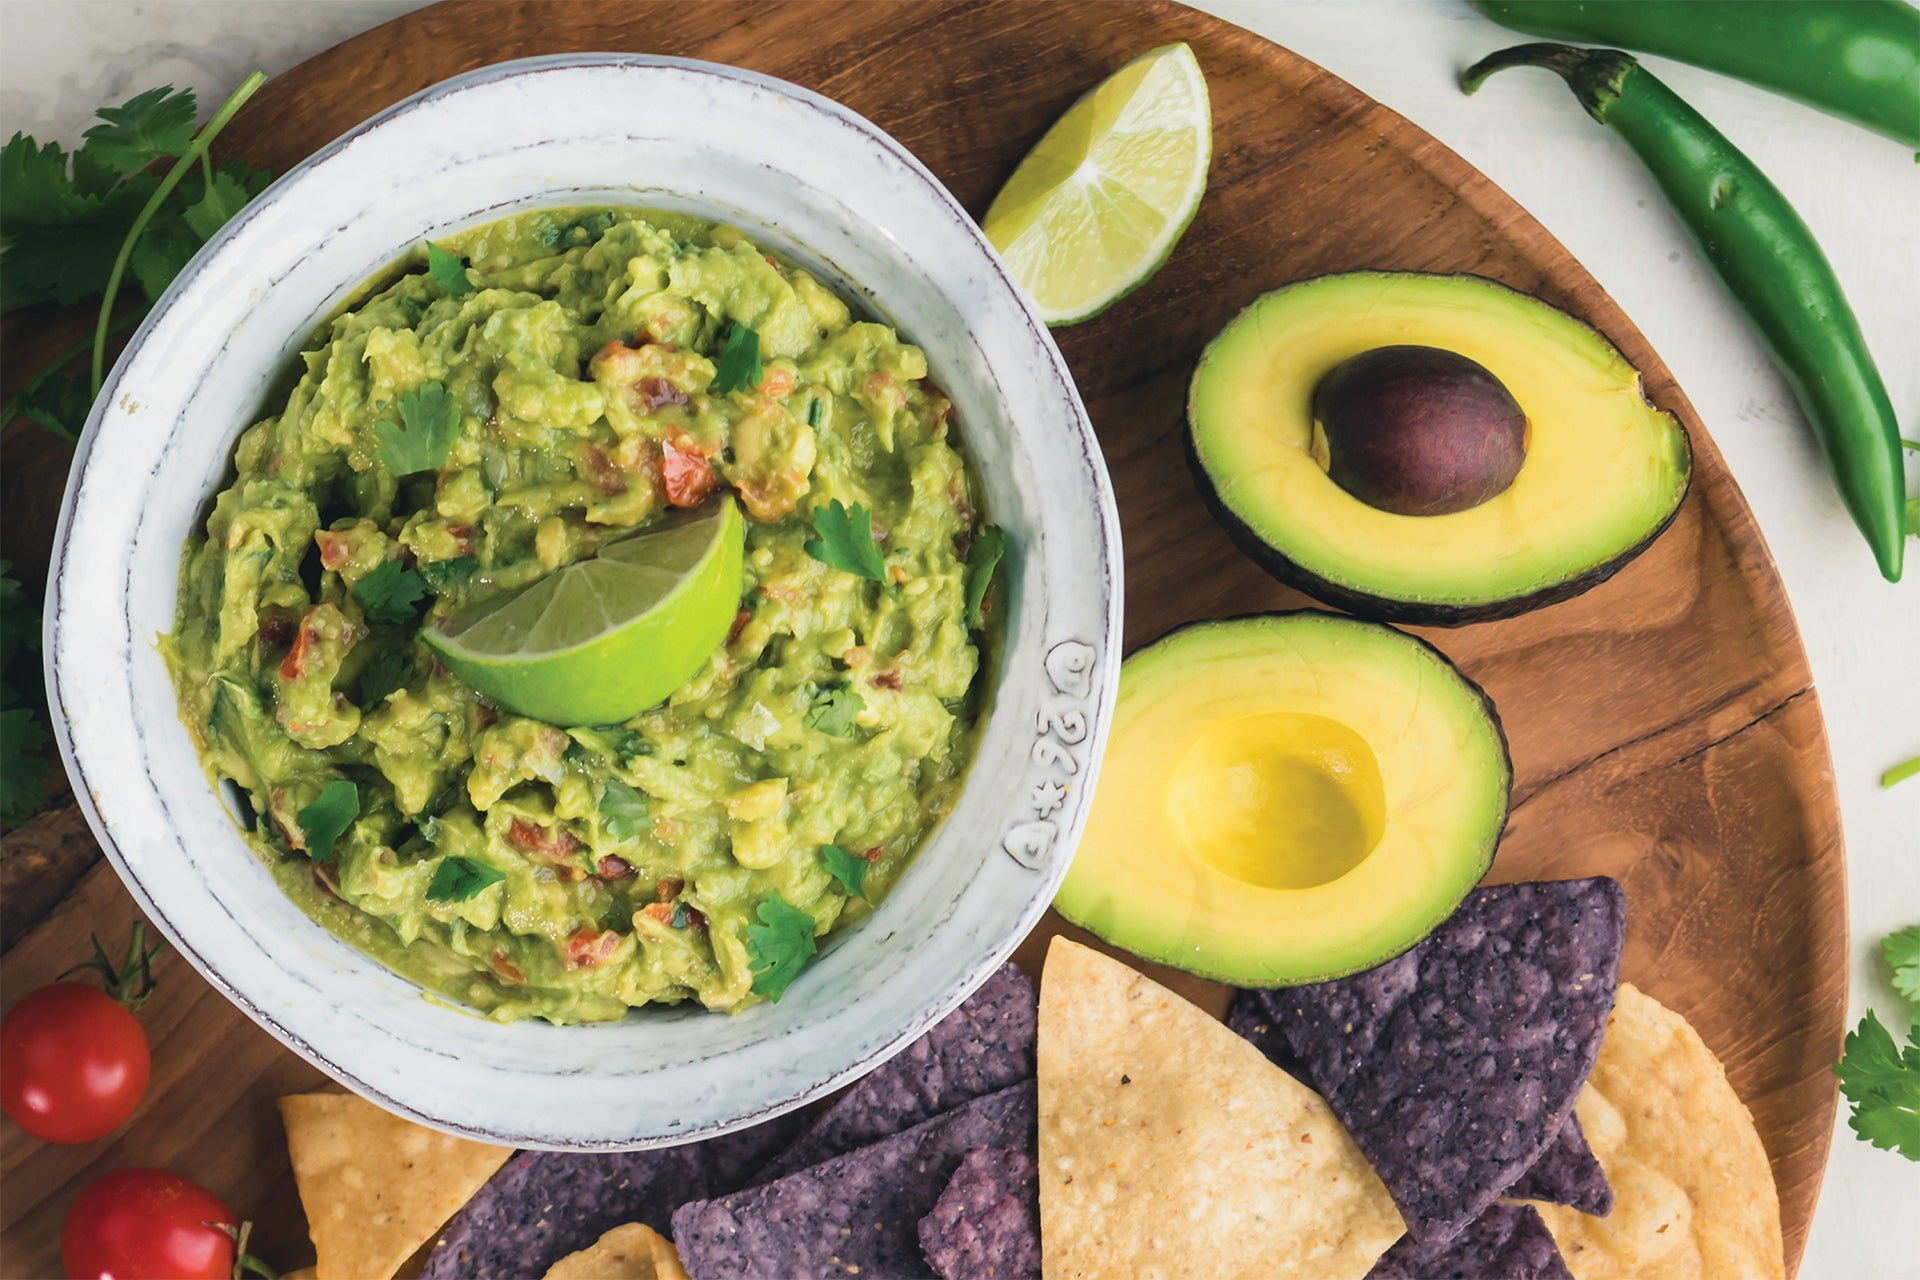 Magic Bullet Guacamole